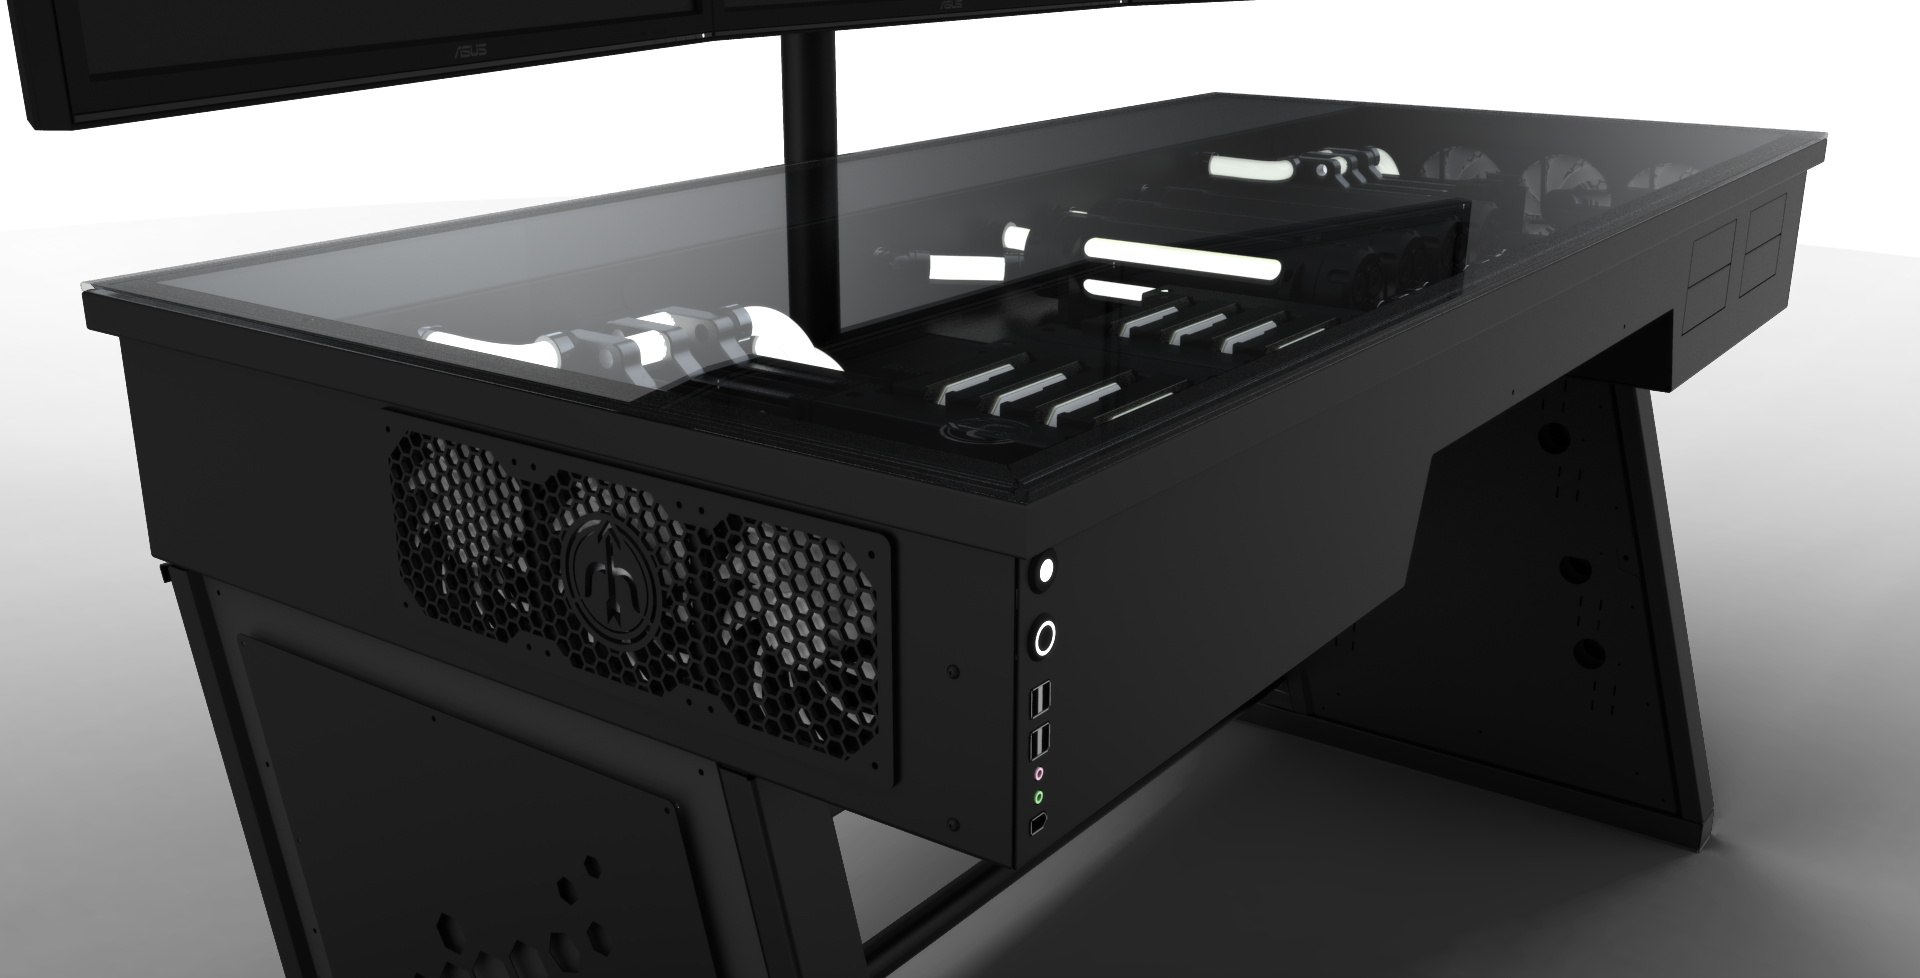 Red Harbinger Cross Desk - Need 3D Model/Sketchup - Case Modding and